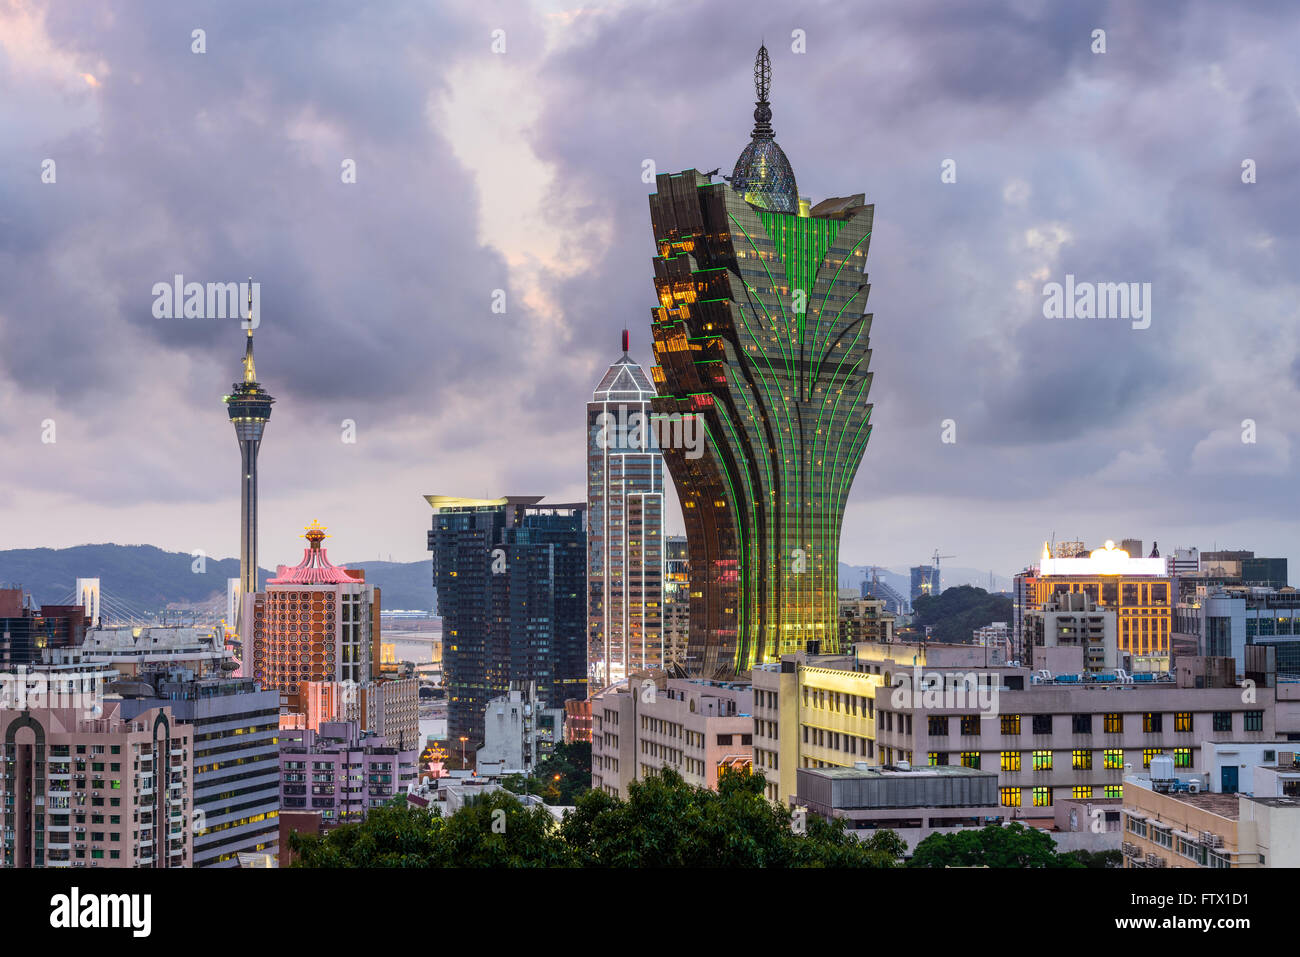 Macao, China Stadt Skyline. Stockfoto